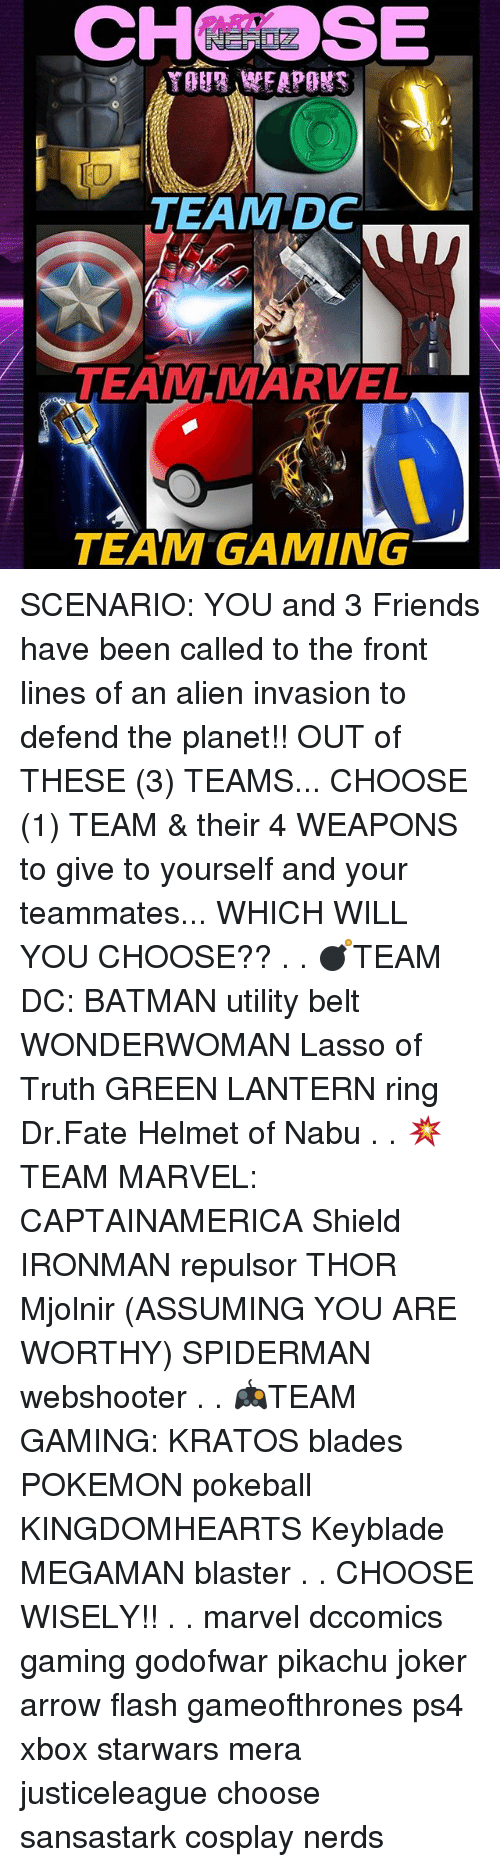 Green Lantern: CHSE  IO  TEAM DC  TEAM MARVEL  TEAM GAMING SCENARIO: YOU and 3 Friends have been called to the front lines of an alien invasion to defend the planet!! OUT of THESE (3) TEAMS... CHOOSE (1) TEAM & their 4 WEAPONS to give to yourself and your teammates... WHICH WILL YOU CHOOSE?? . . 💣TEAM DC: BATMAN utility belt WONDERWOMAN Lasso of Truth GREEN LANTERN ring Dr.Fate Helmet of Nabu . . 💥TEAM MARVEL: CAPTAINAMERICA Shield IRONMAN repulsor THOR Mjolnir (ASSUMING YOU ARE WORTHY) SPIDERMAN webshooter . . 🎮TEAM GAMING: KRATOS blades POKEMON pokeball KINGDOMHEARTS Keyblade MEGAMAN blaster . . CHOOSE WISELY!! . . marvel dccomics gaming godofwar pikachu joker arrow flash gameofthrones ps4 xbox starwars mera justiceleague choose sansastark cosplay nerds